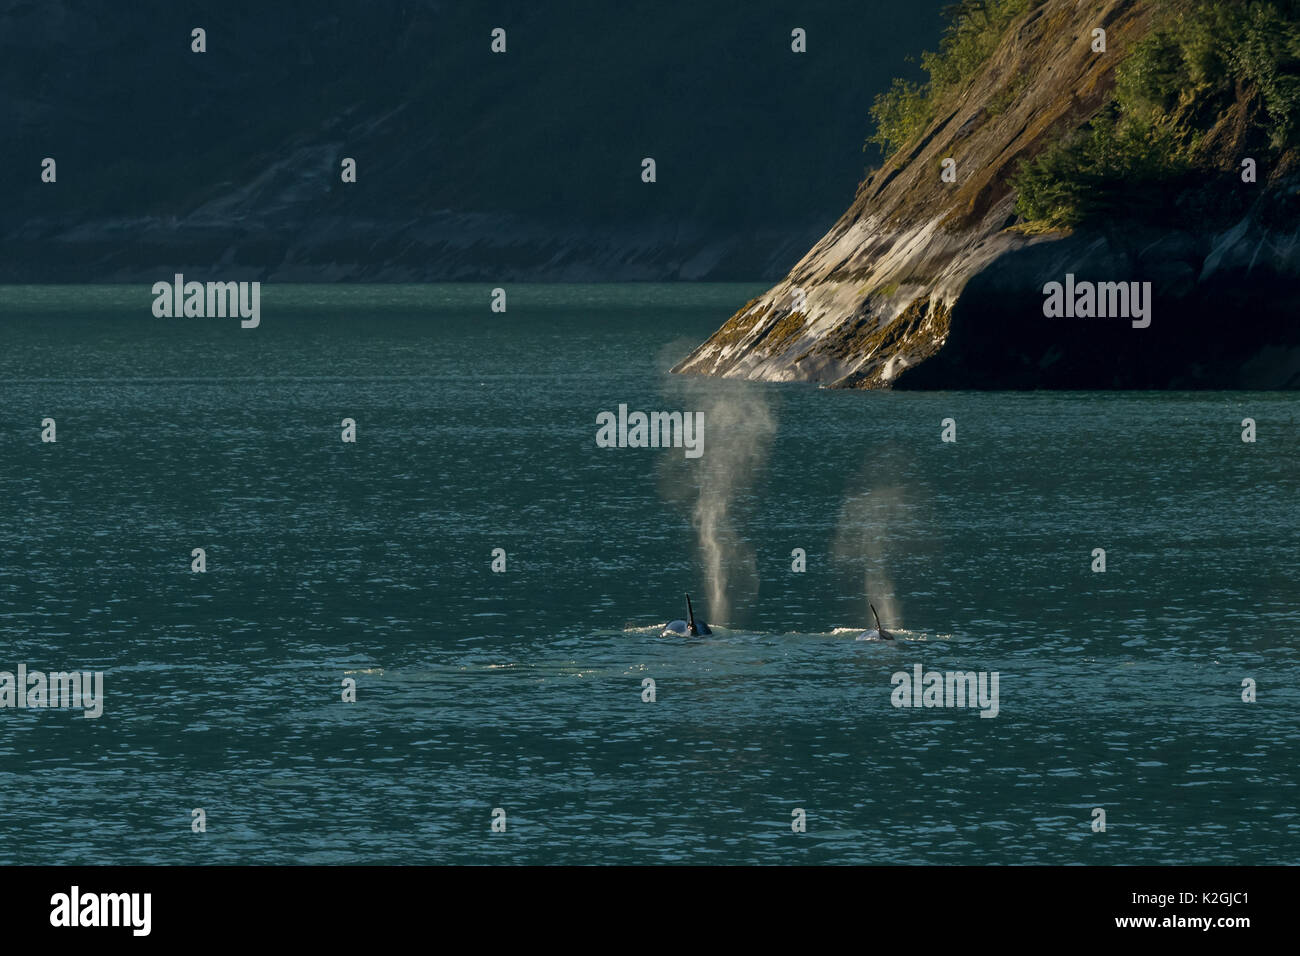 Two killer whales or orcas (Orcinus orca) traveling in Southeast Alaska's Inside Passage. - Stock Image